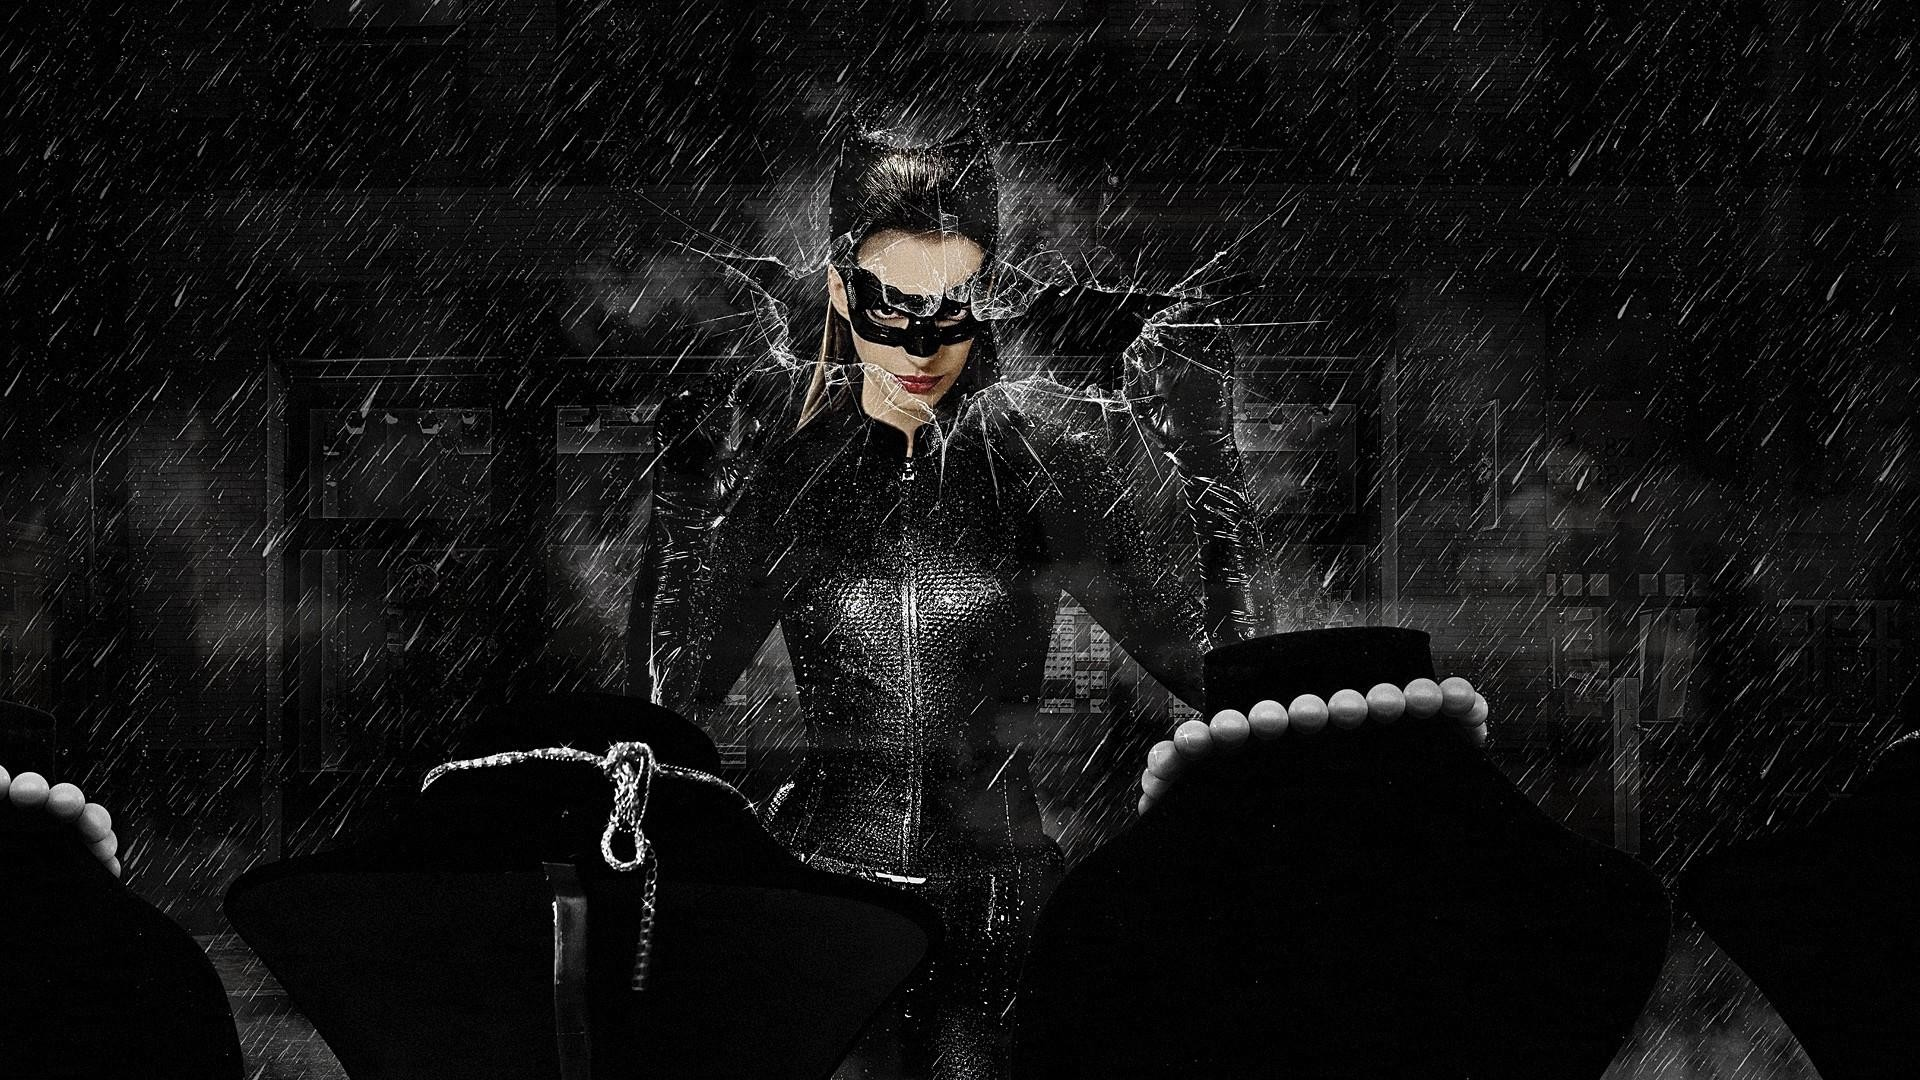 Anne Hathaway – Catwoman Wallpaper – 2